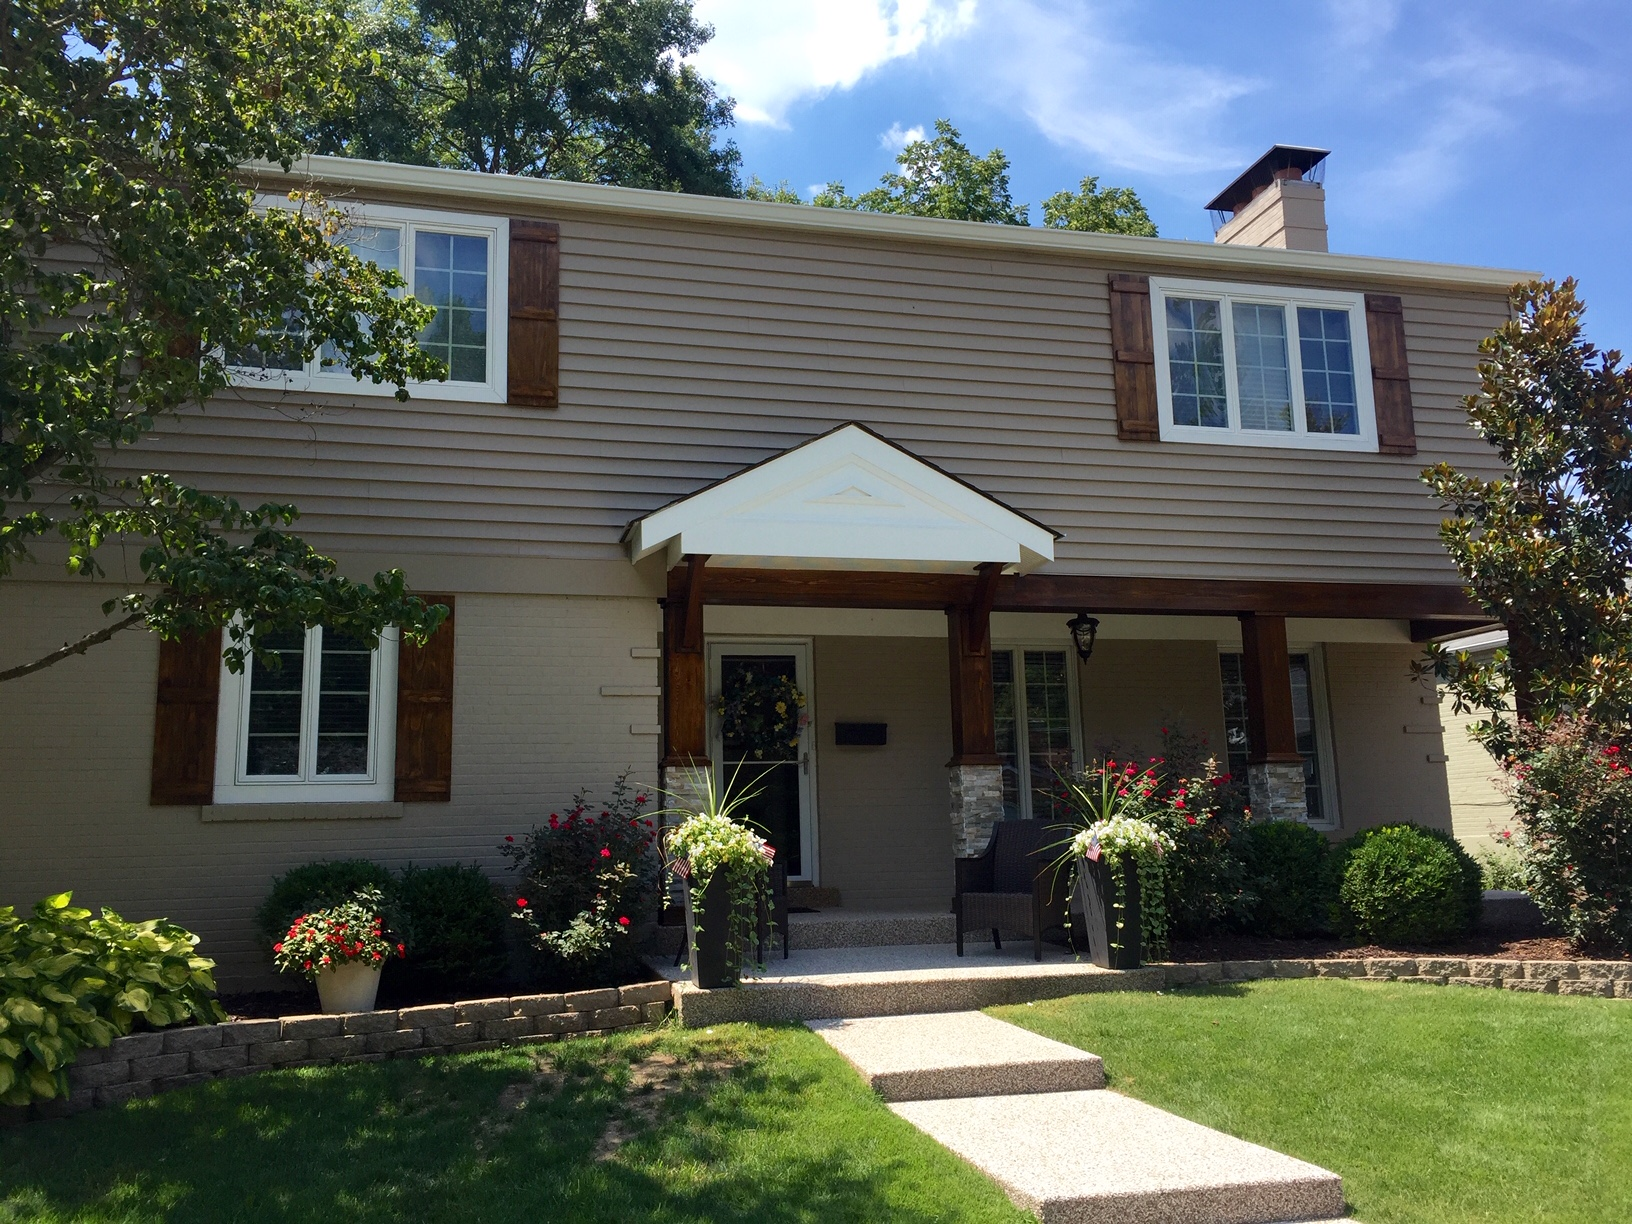 Property for Sale at Lovely Two Story in the Heart of Ladue 37 Magnolia Drive Ladue, Missouri 63124 United States